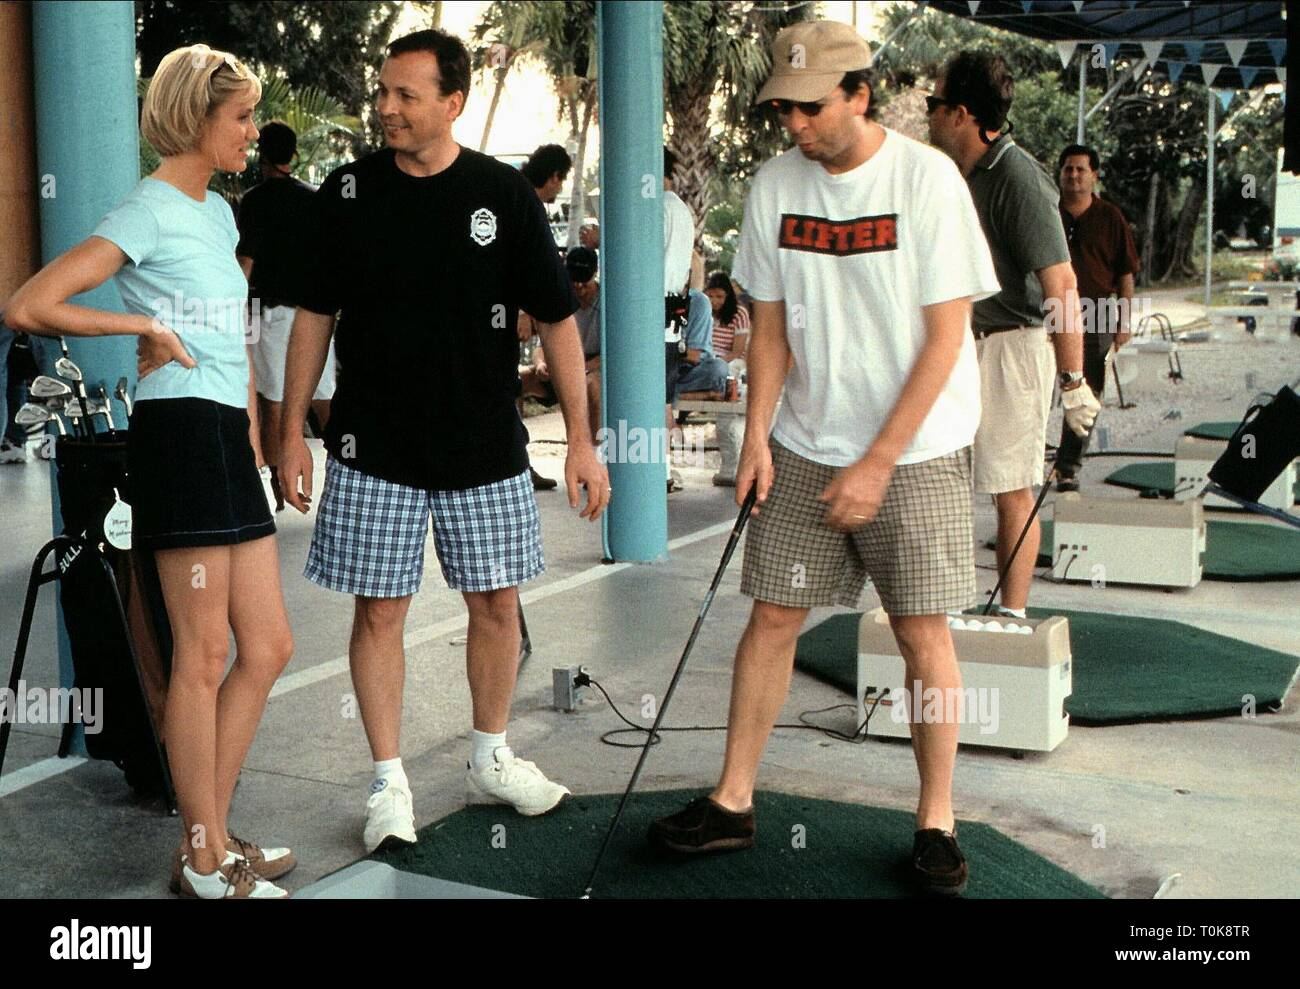 CAMERON DIAZ, BOBBY FARRELLY, PETER FARRELLY, THERE'S SOMETHING ABOUT MARY, 1998 - Stock Image